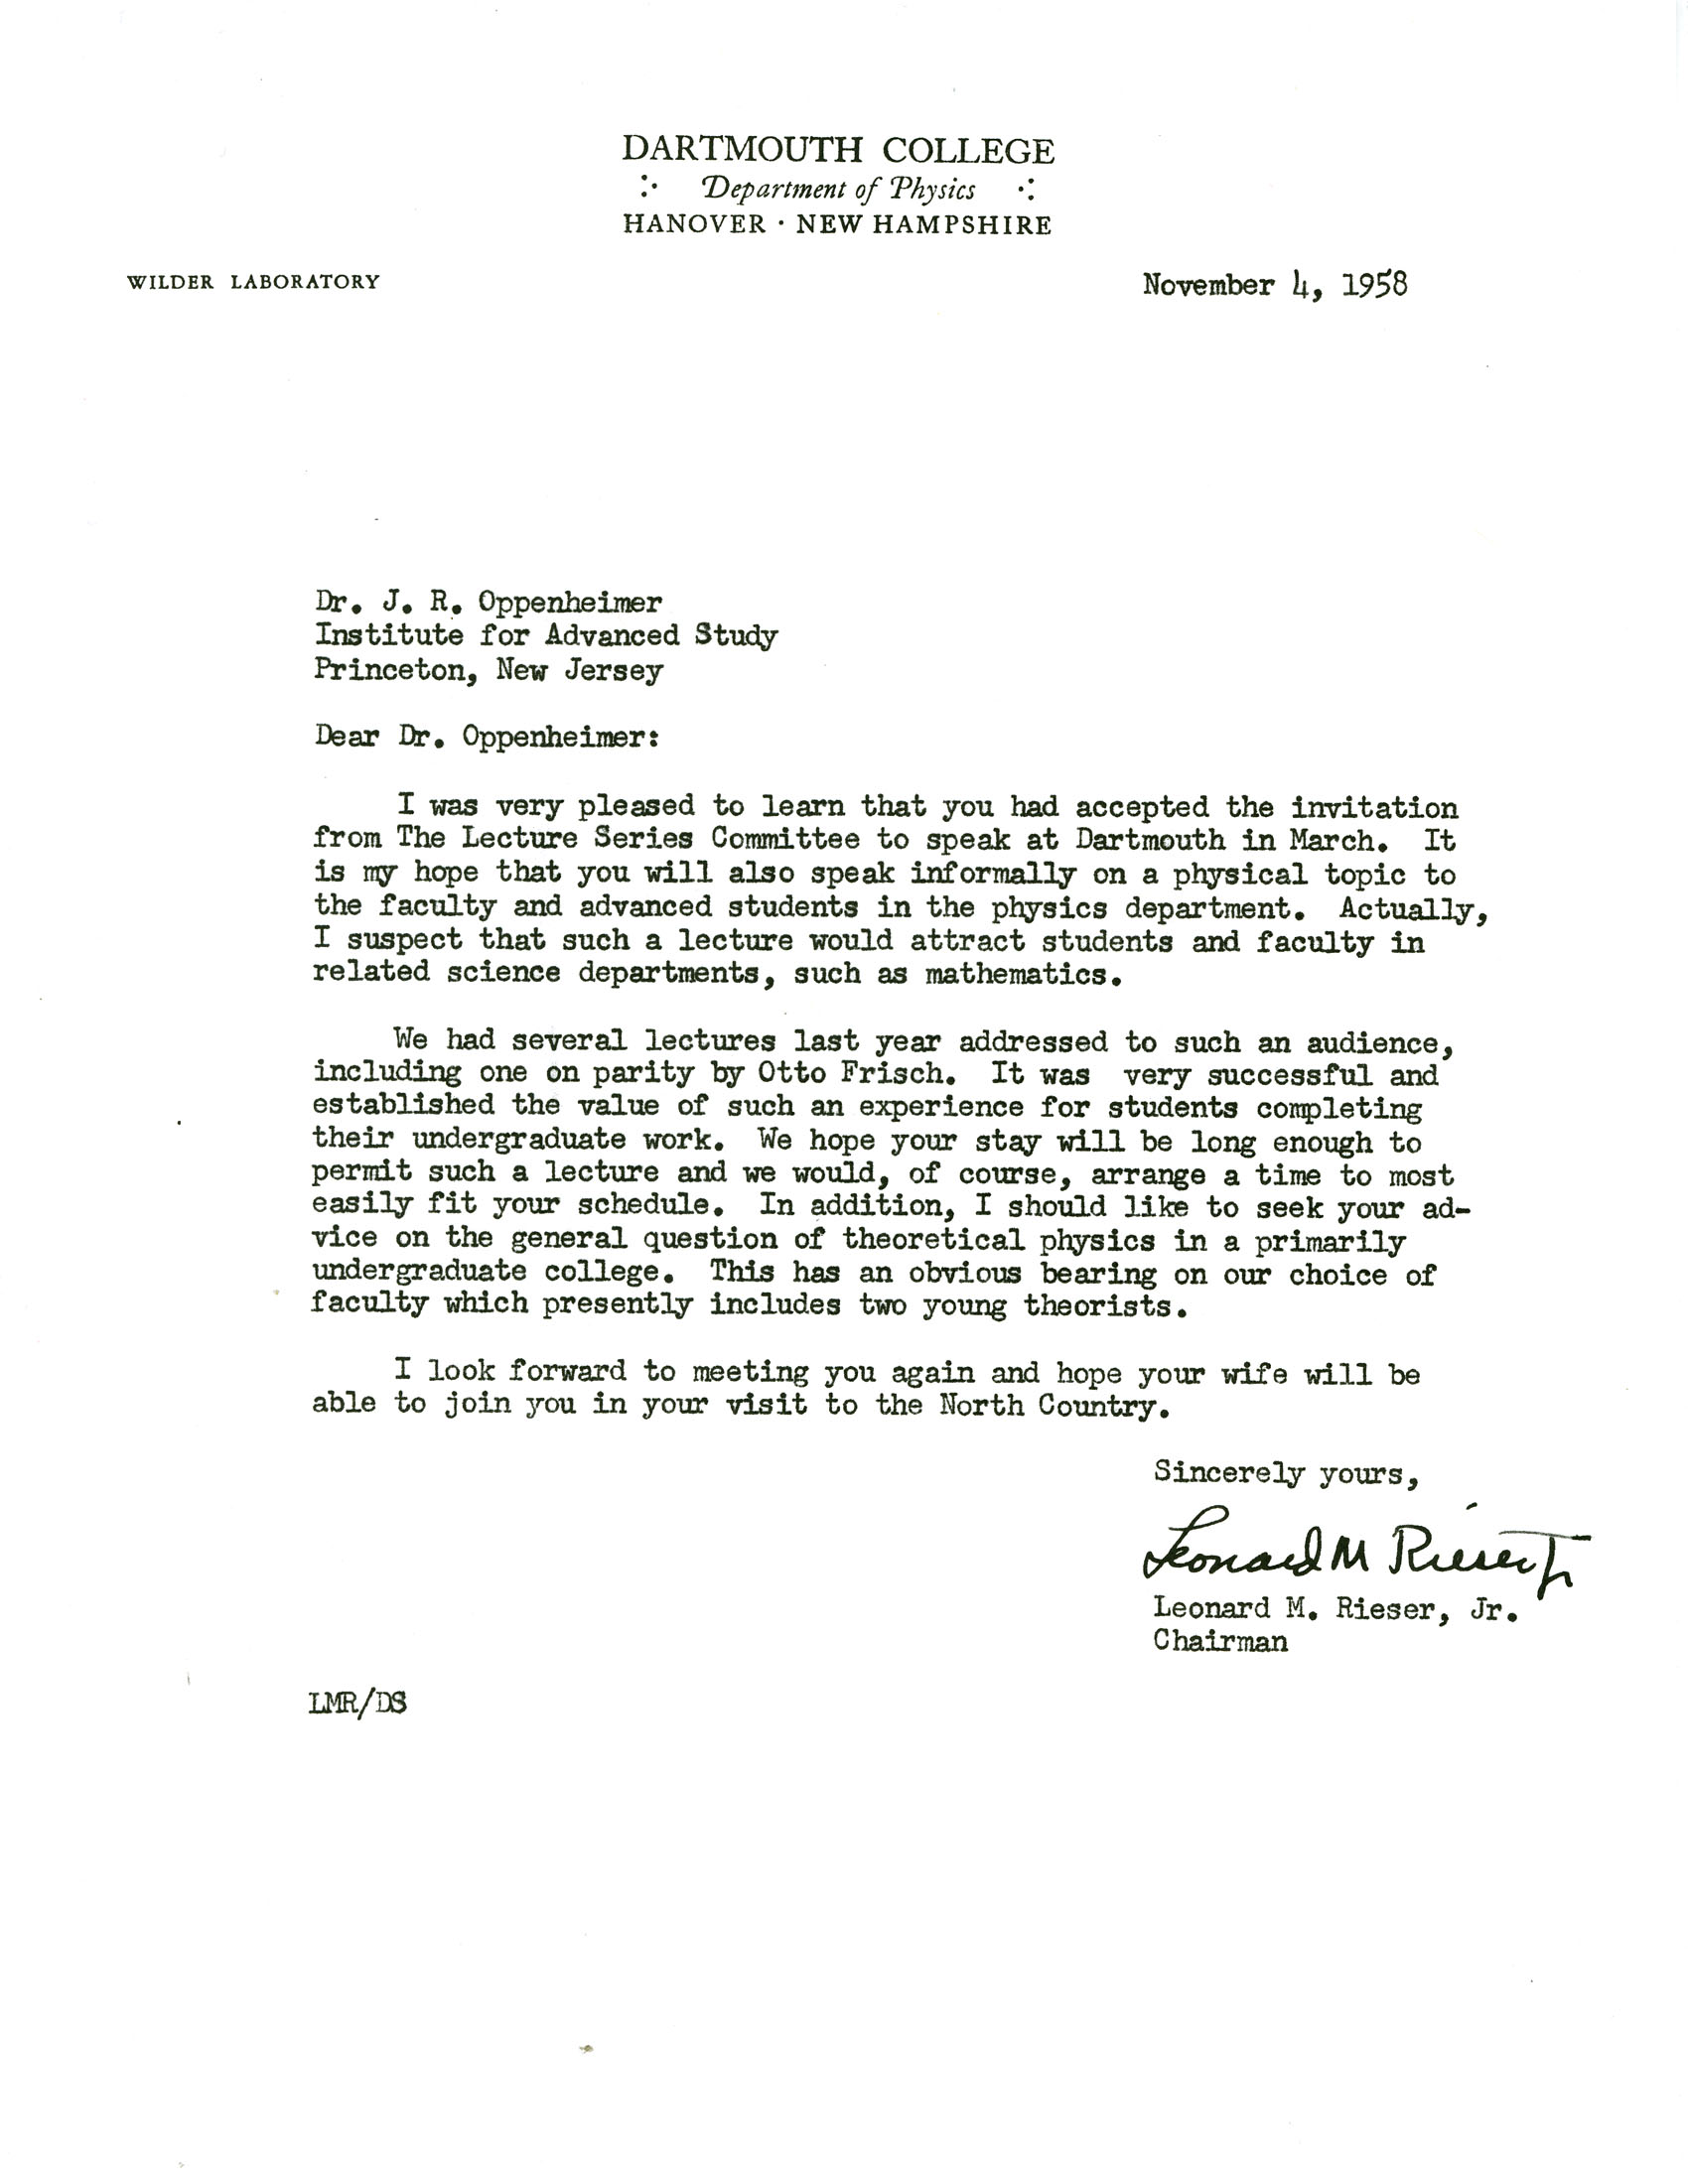 Letter From Leonard Rieser Jr Dartmouth College To